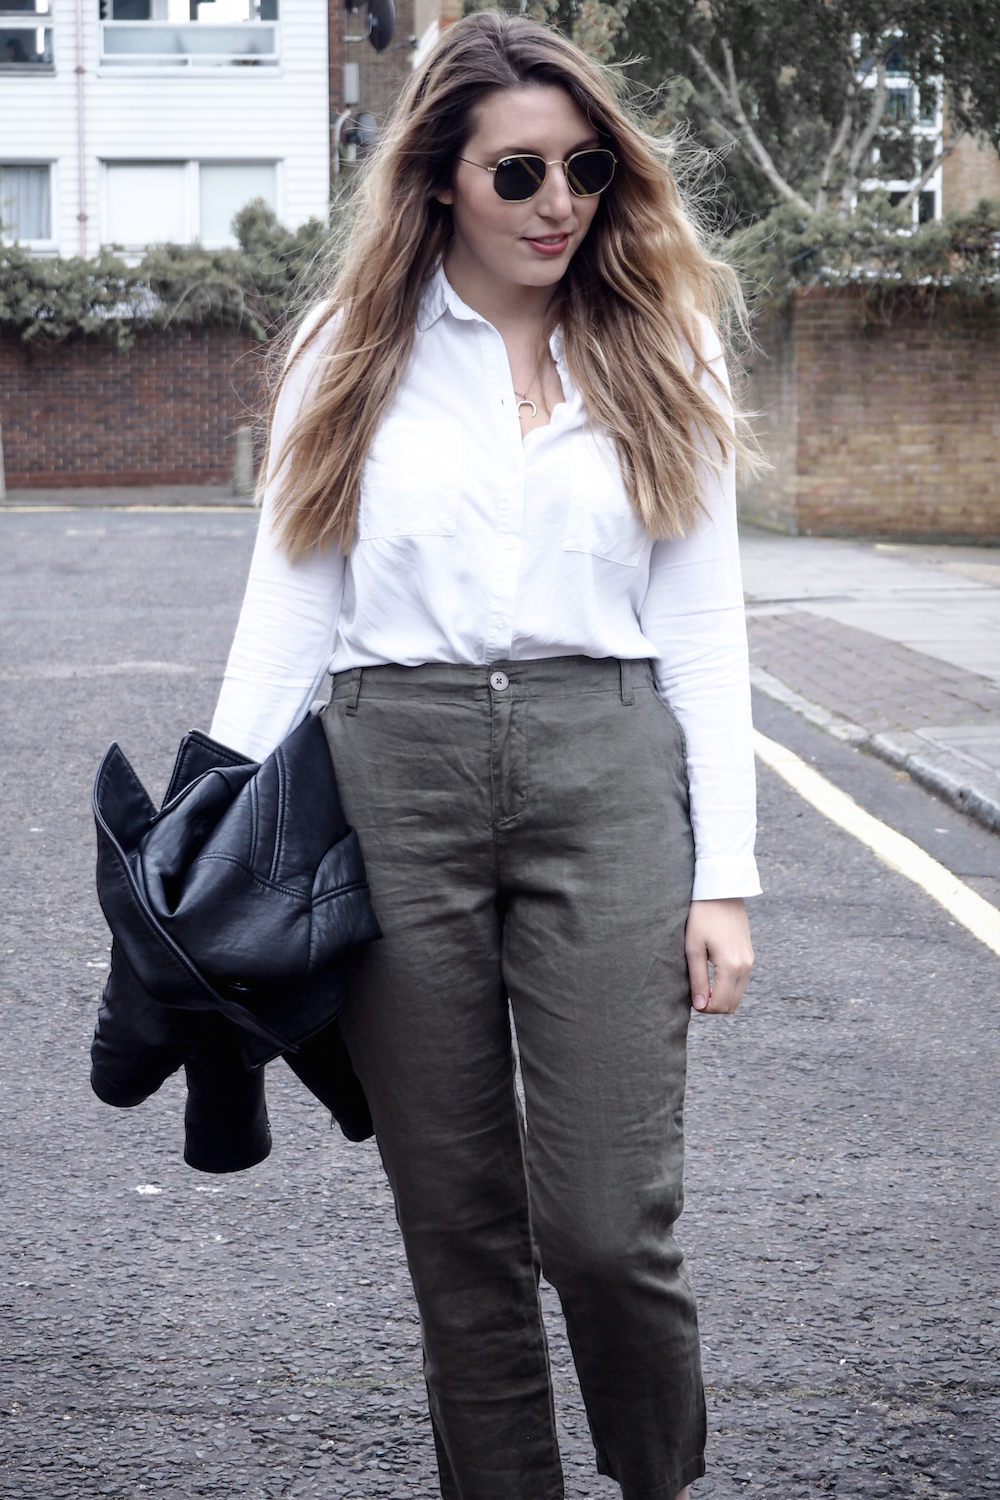 A woman walking down a London street wearing linen trousers, a white top and holding a leather jacket | Wolf & Stag